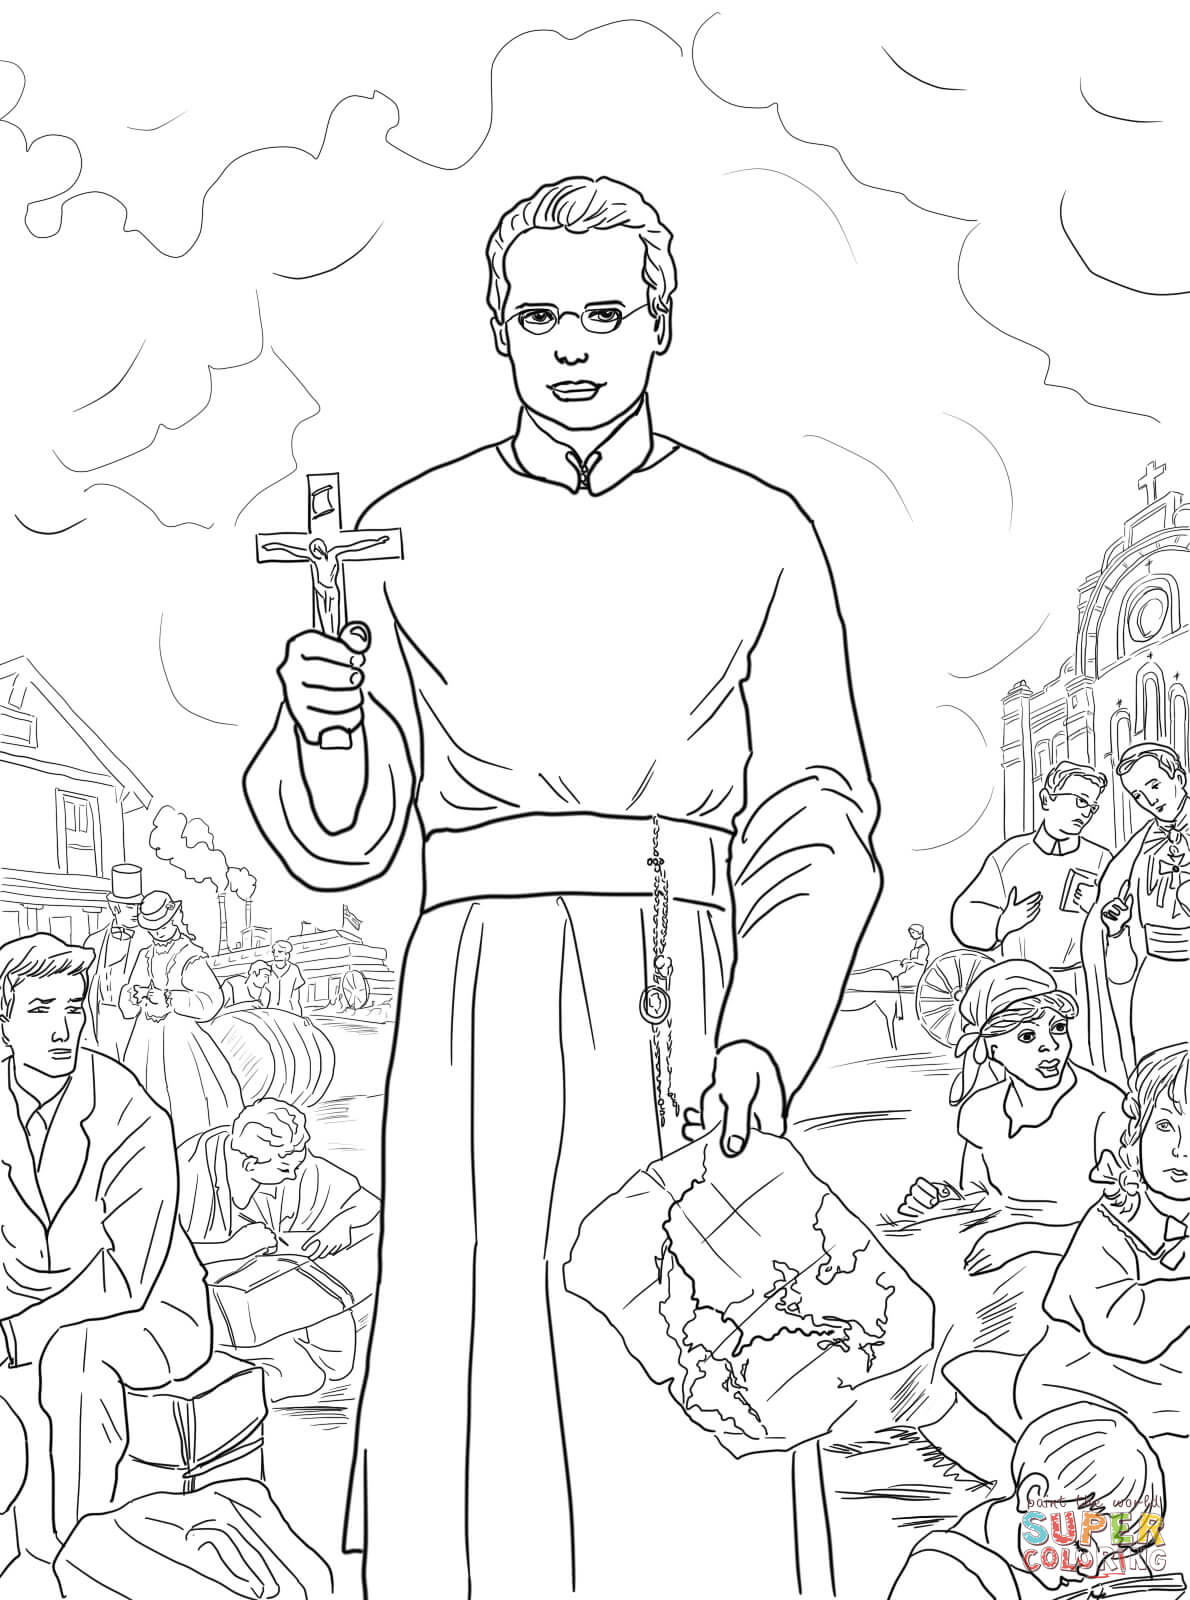 1190x1600 St. Francis Xavier Coloring Page Free Printable Coloring Pages